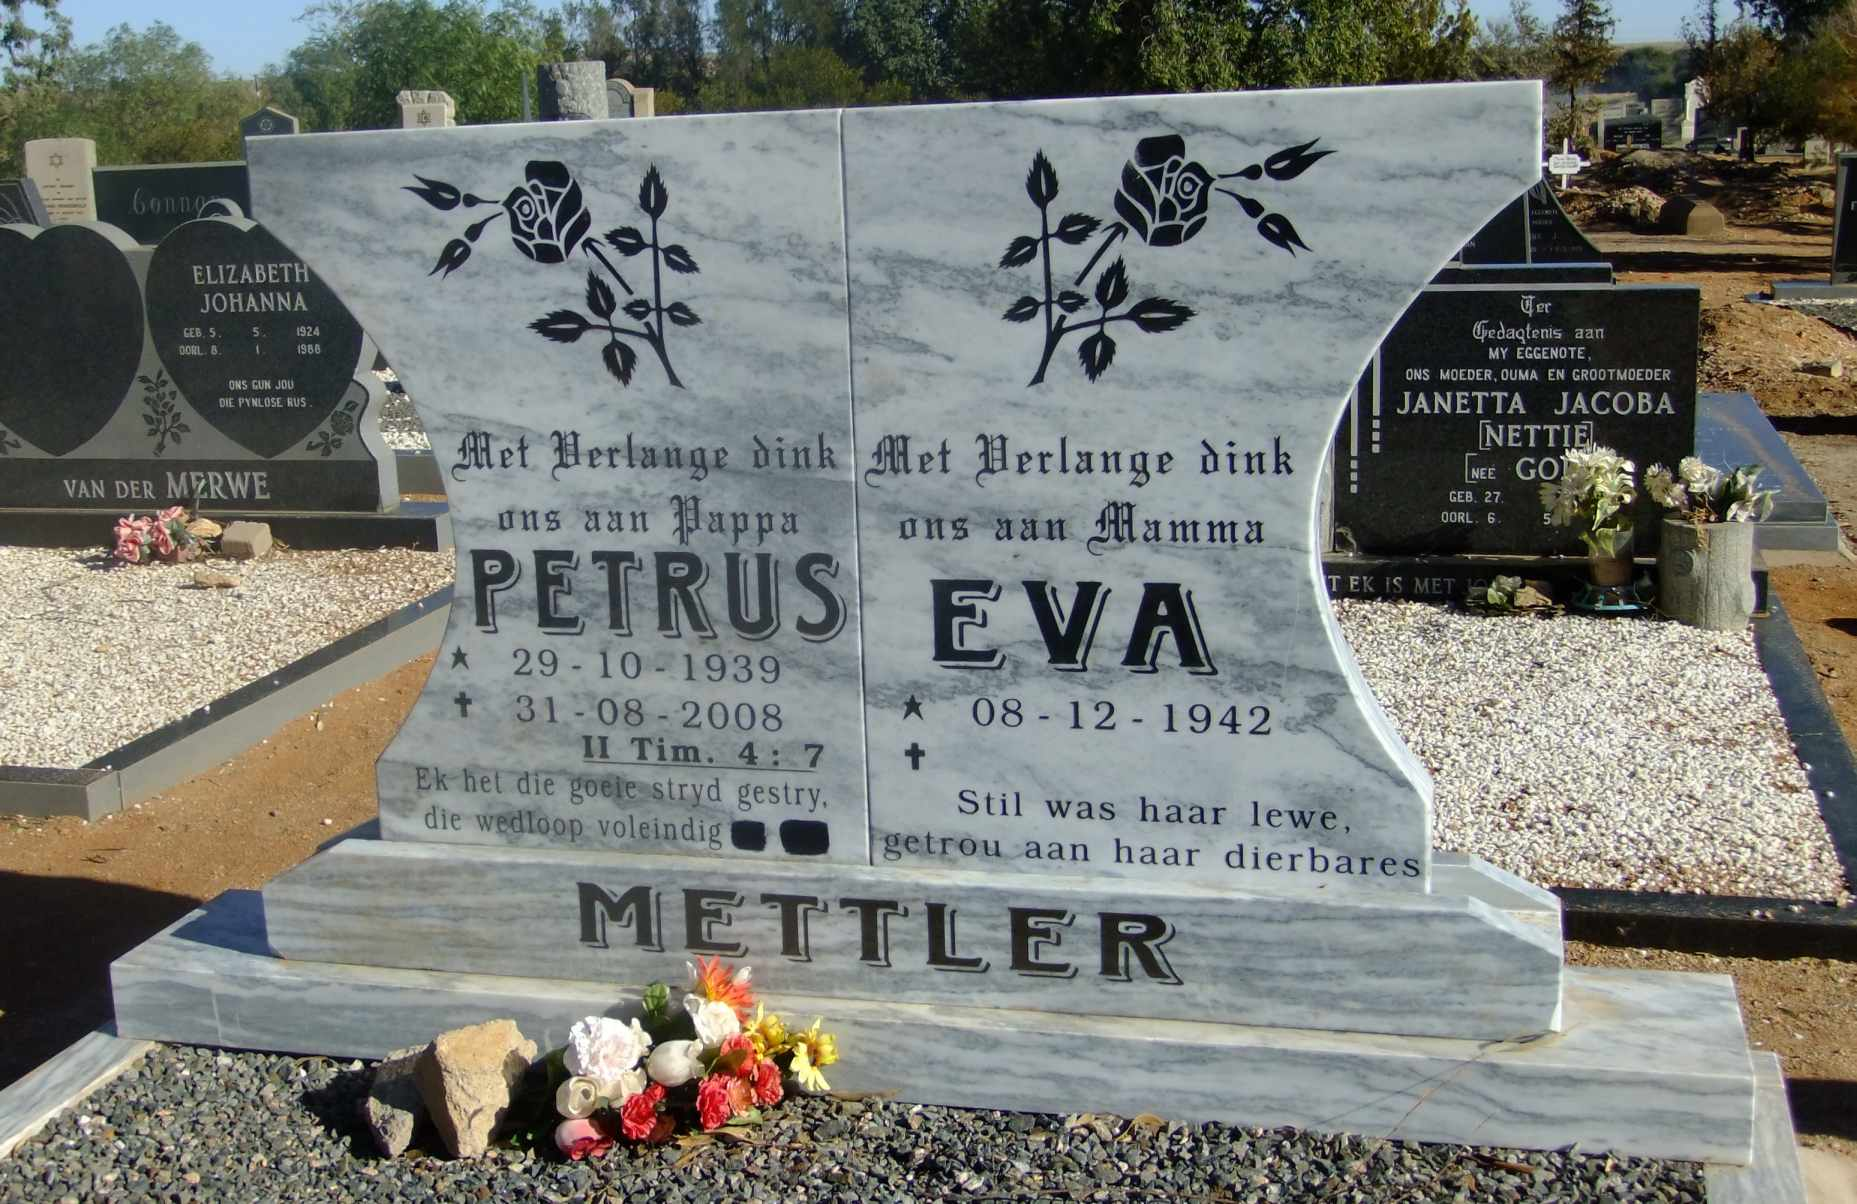 Mettler, Petrus born 29 October 1939 died 31 August 2008 and Eva born 08 December 1942